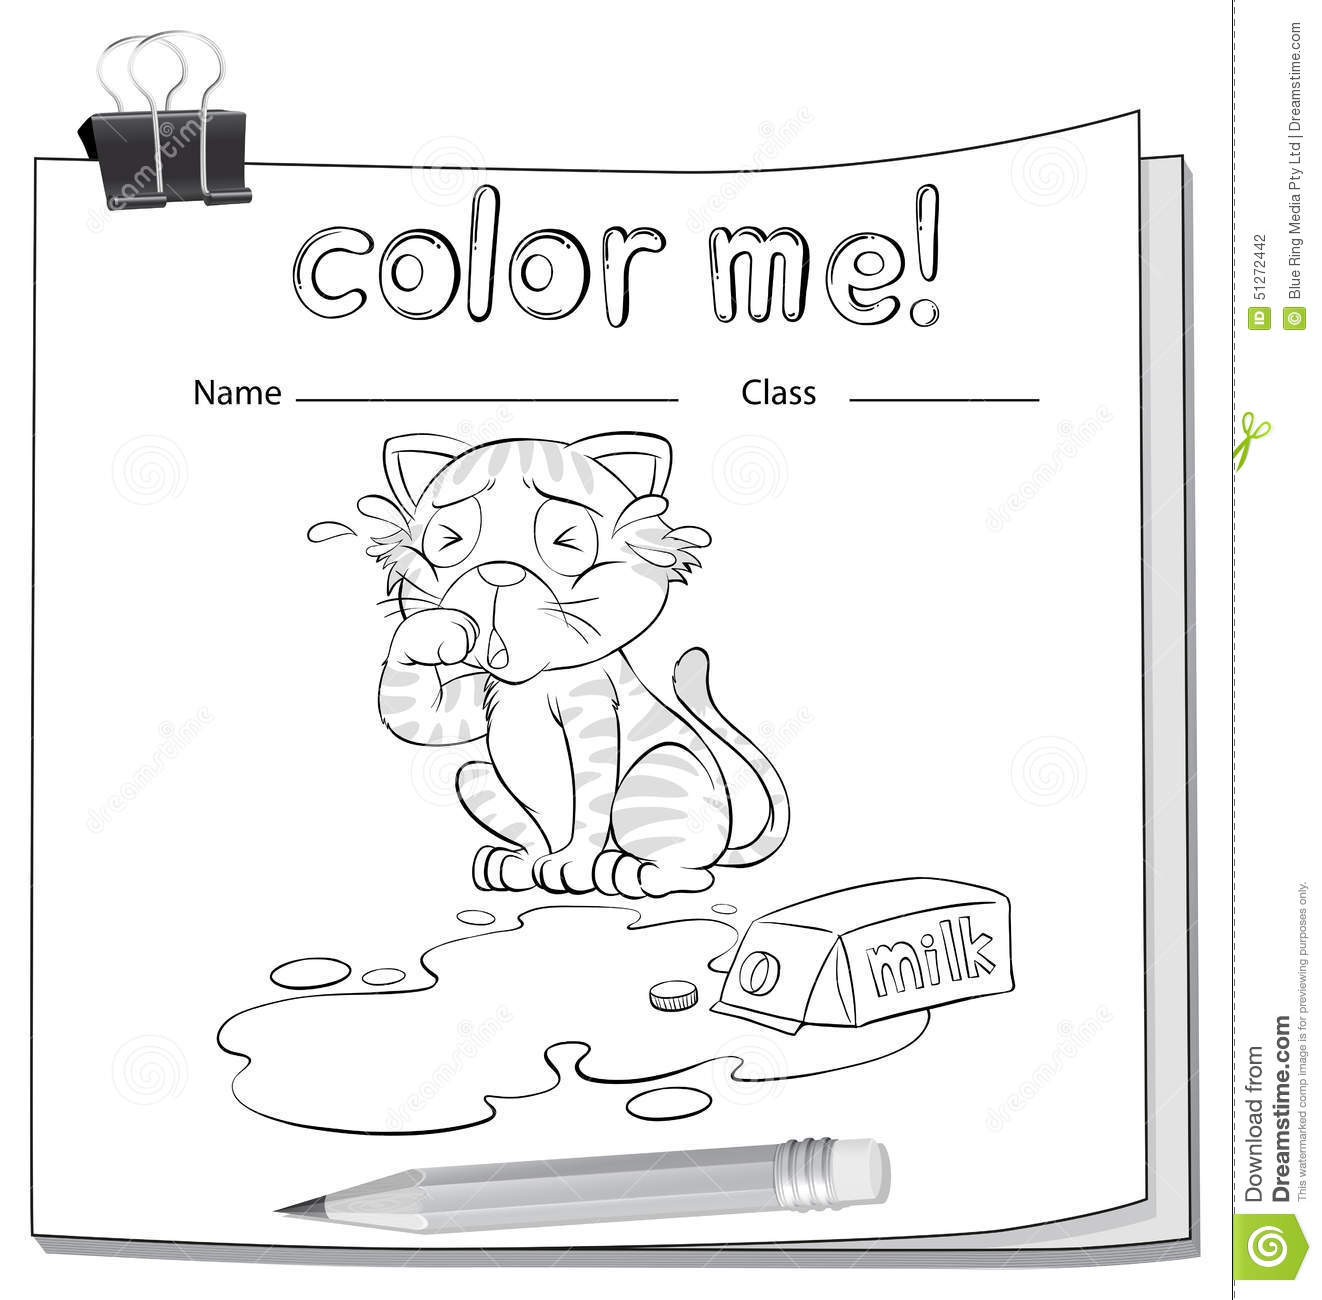 Coloring Worksheet With A Crying Cat Stock Vector